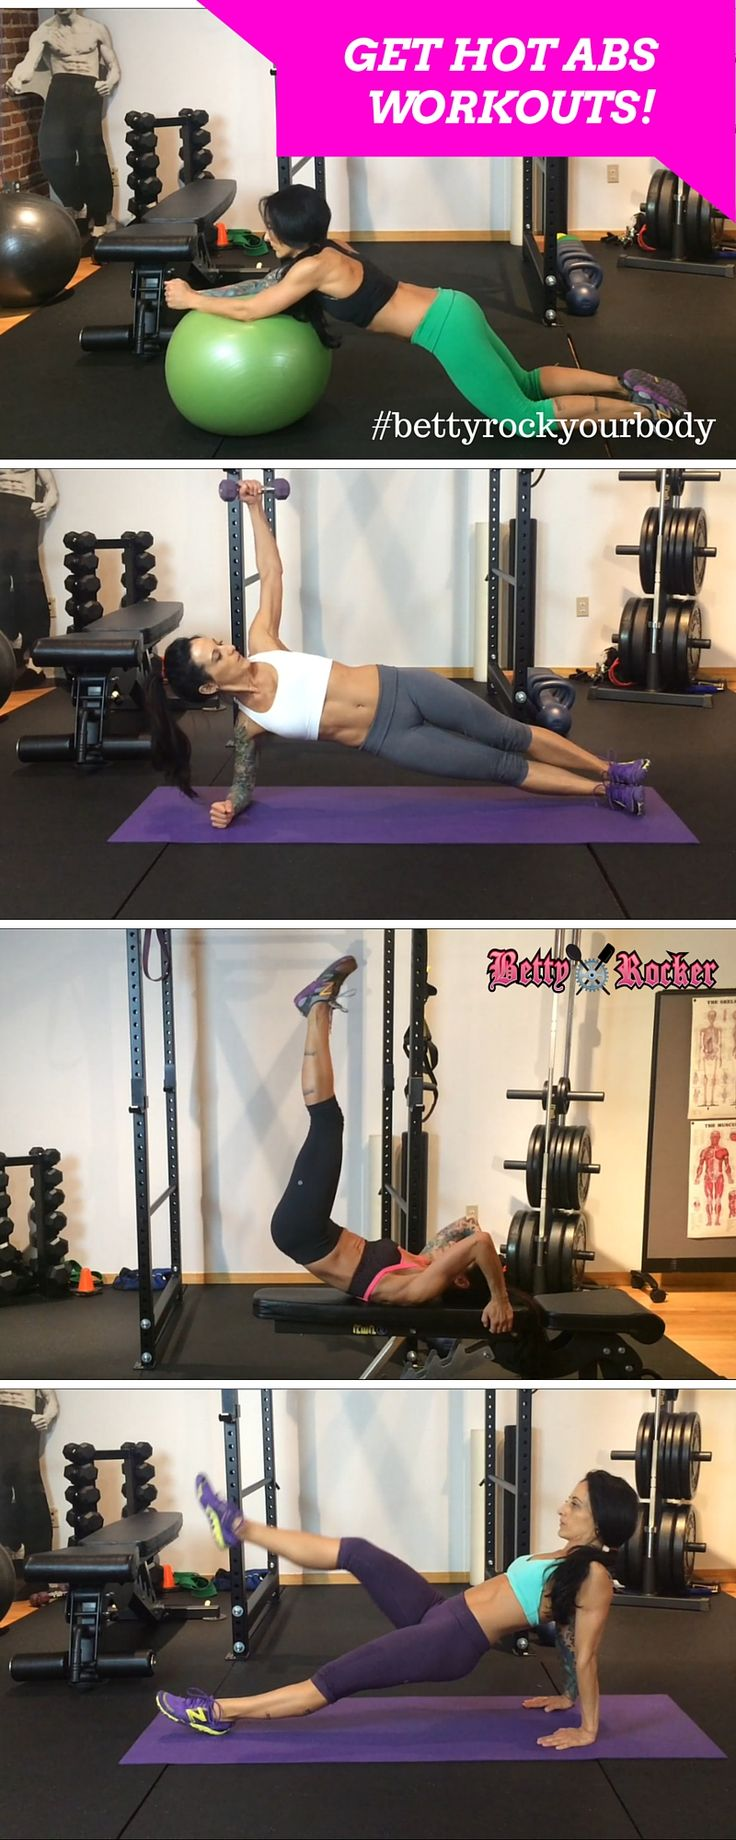 Day 9 — Make Fat Cry Challenge ABS